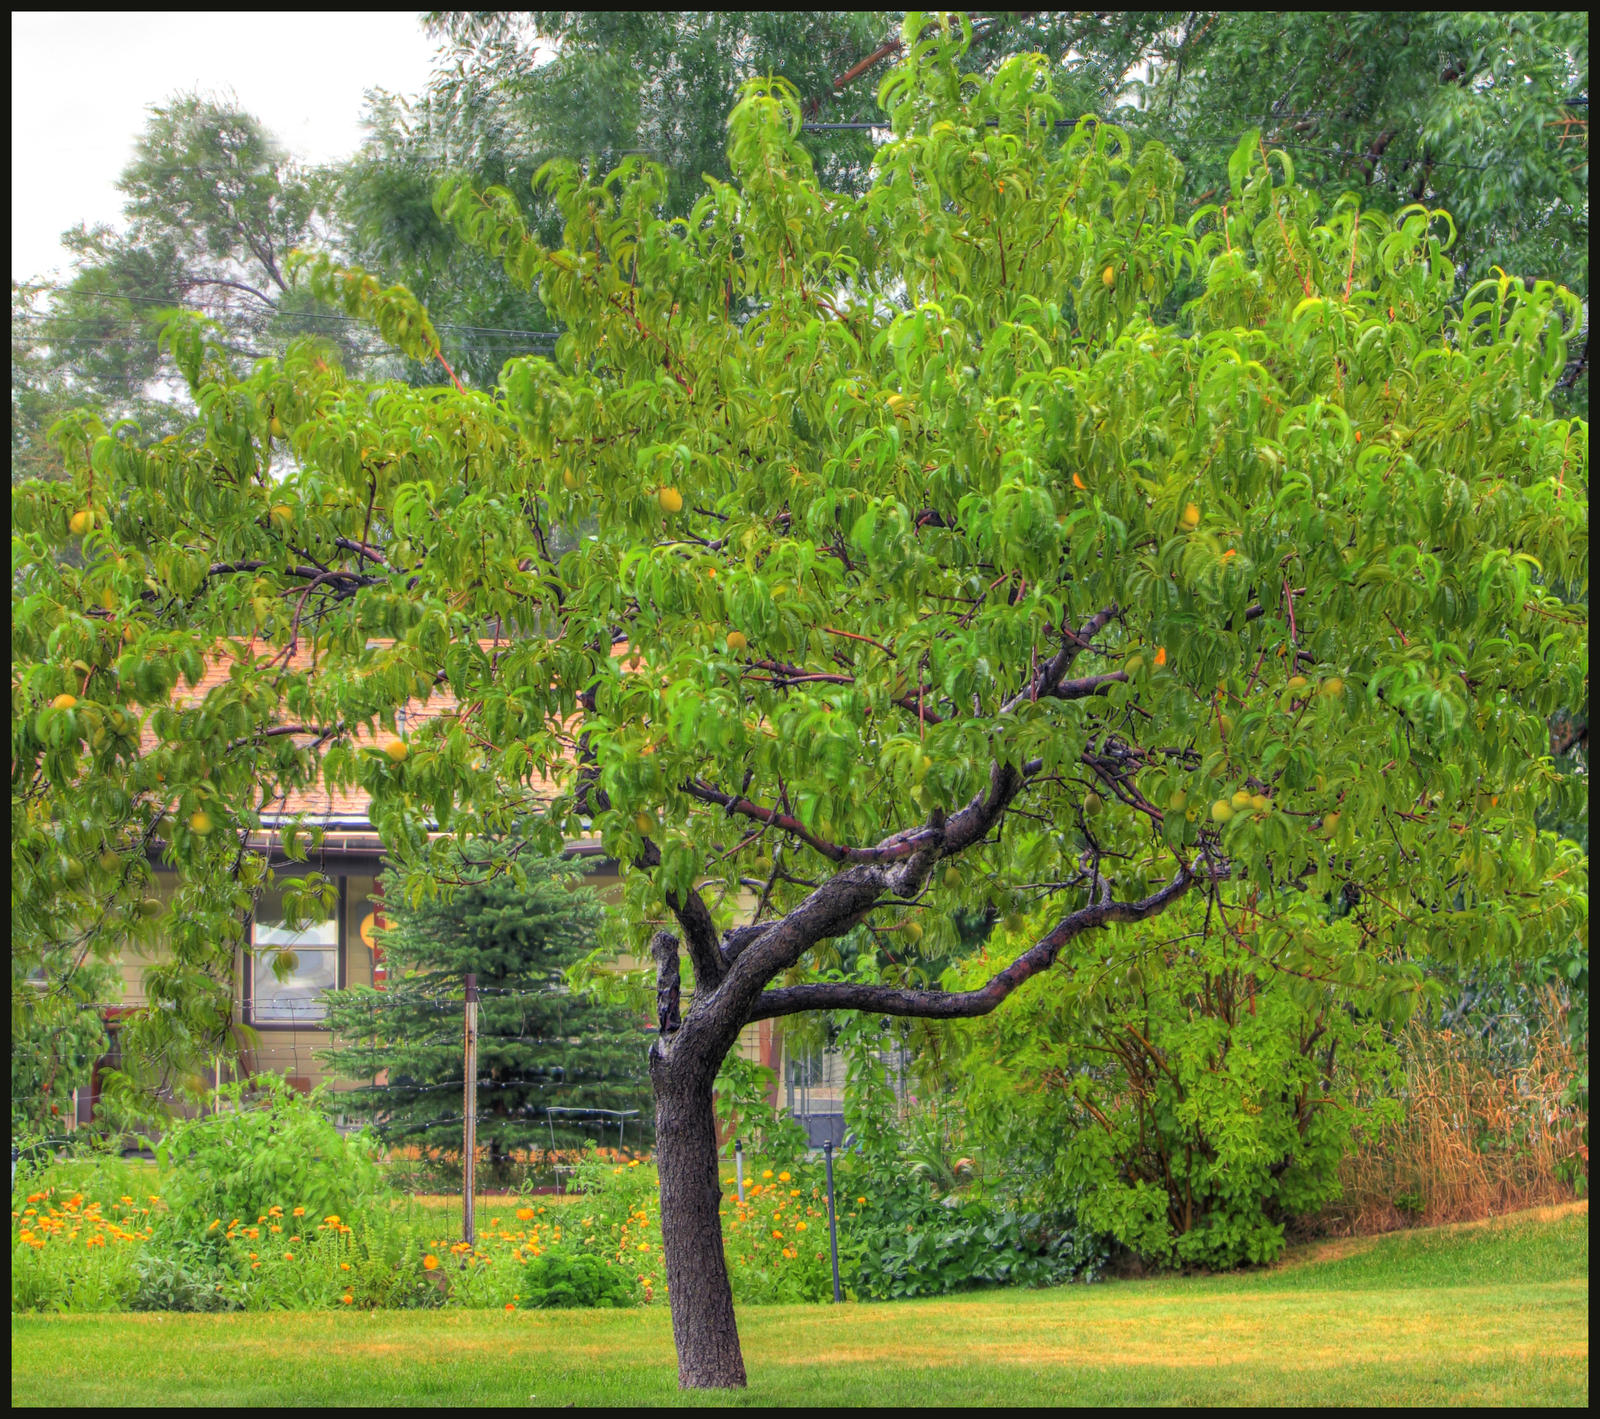 Thundestorm peach tree hdr by coby111 on deviantart for The peach tree